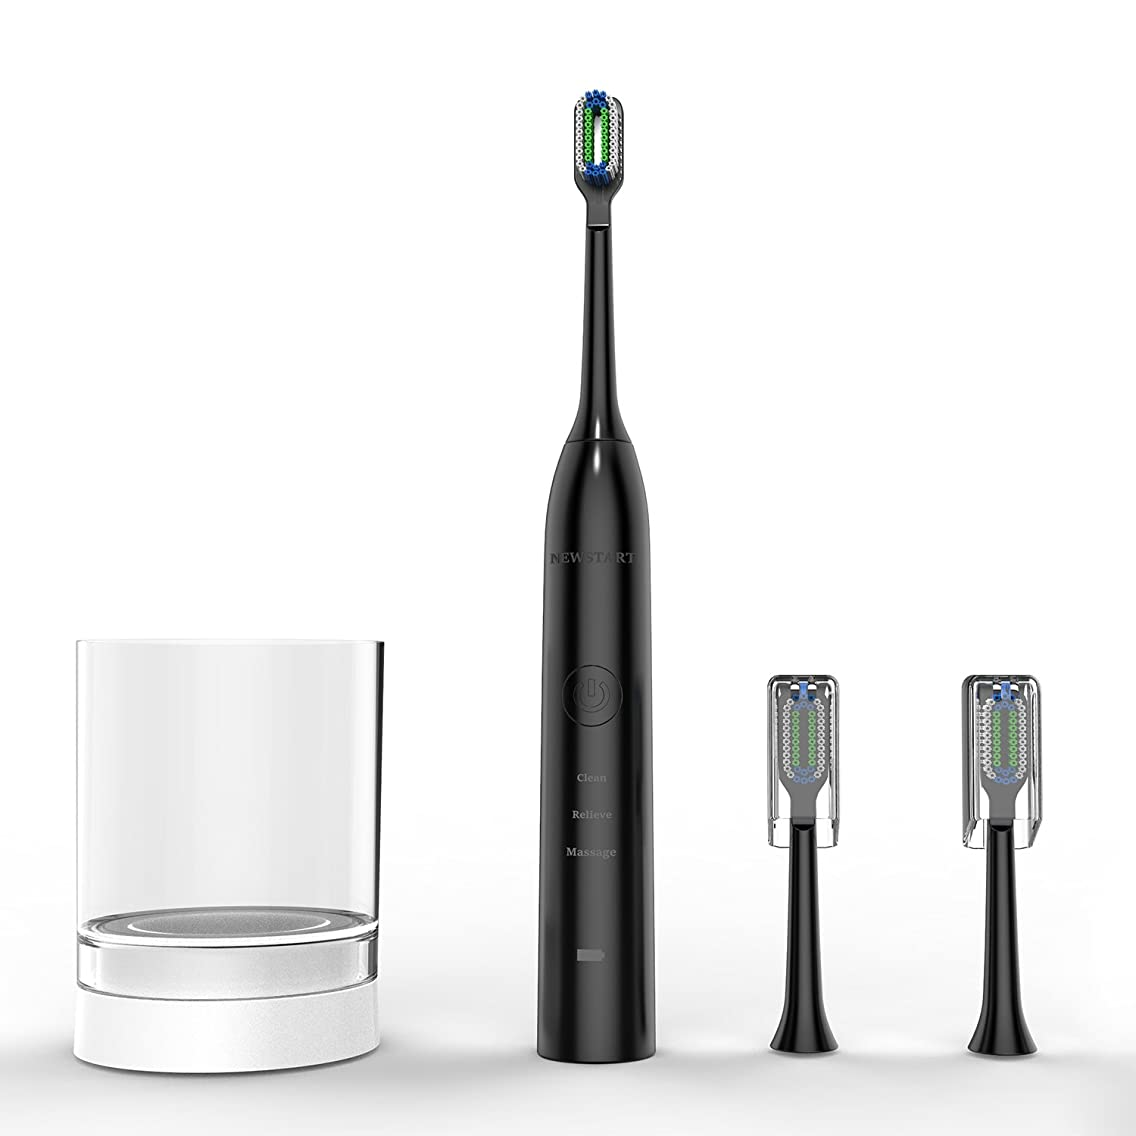 Sonic Electric Toothbrush, Power Rechargeable Toothbrush with 4 Brushing Modes, with 5 Replacement Heads (Black)